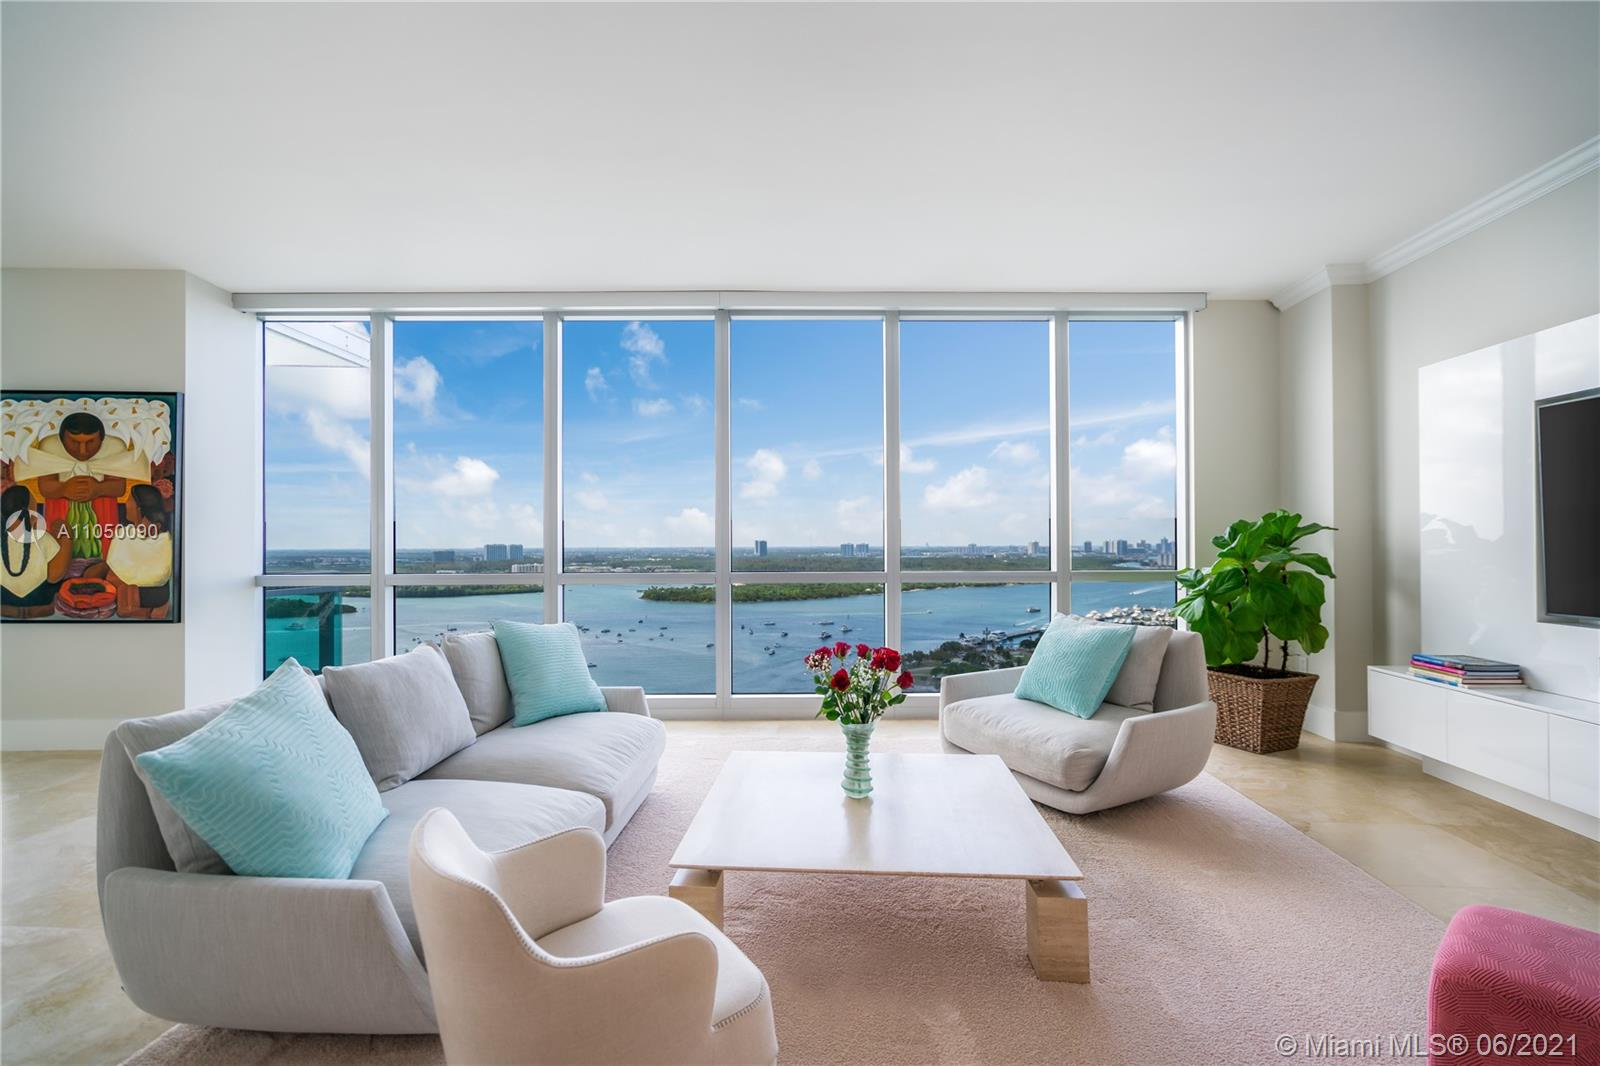 Stunning high-floor corner residence with private elevator and floor-to-ceiling windows. Enjoy breathtaking unobstructed views of the intracoastal inlet, the ocean coastline, and the Miami skyline from an impressive terrace. Residence 2404, located one floor below the penthouses, features a state-of-the-art kitchen with Poggenpohl cabinetry, fully-appointed bathrooms featuring the finest fixtures. Residents enjoy full access to Ritz Carlton resort amenities such as ocean and poolside service and an on-site restaurant and spa. Located minutes from Miami Beach's finest shopping and dining destinations.